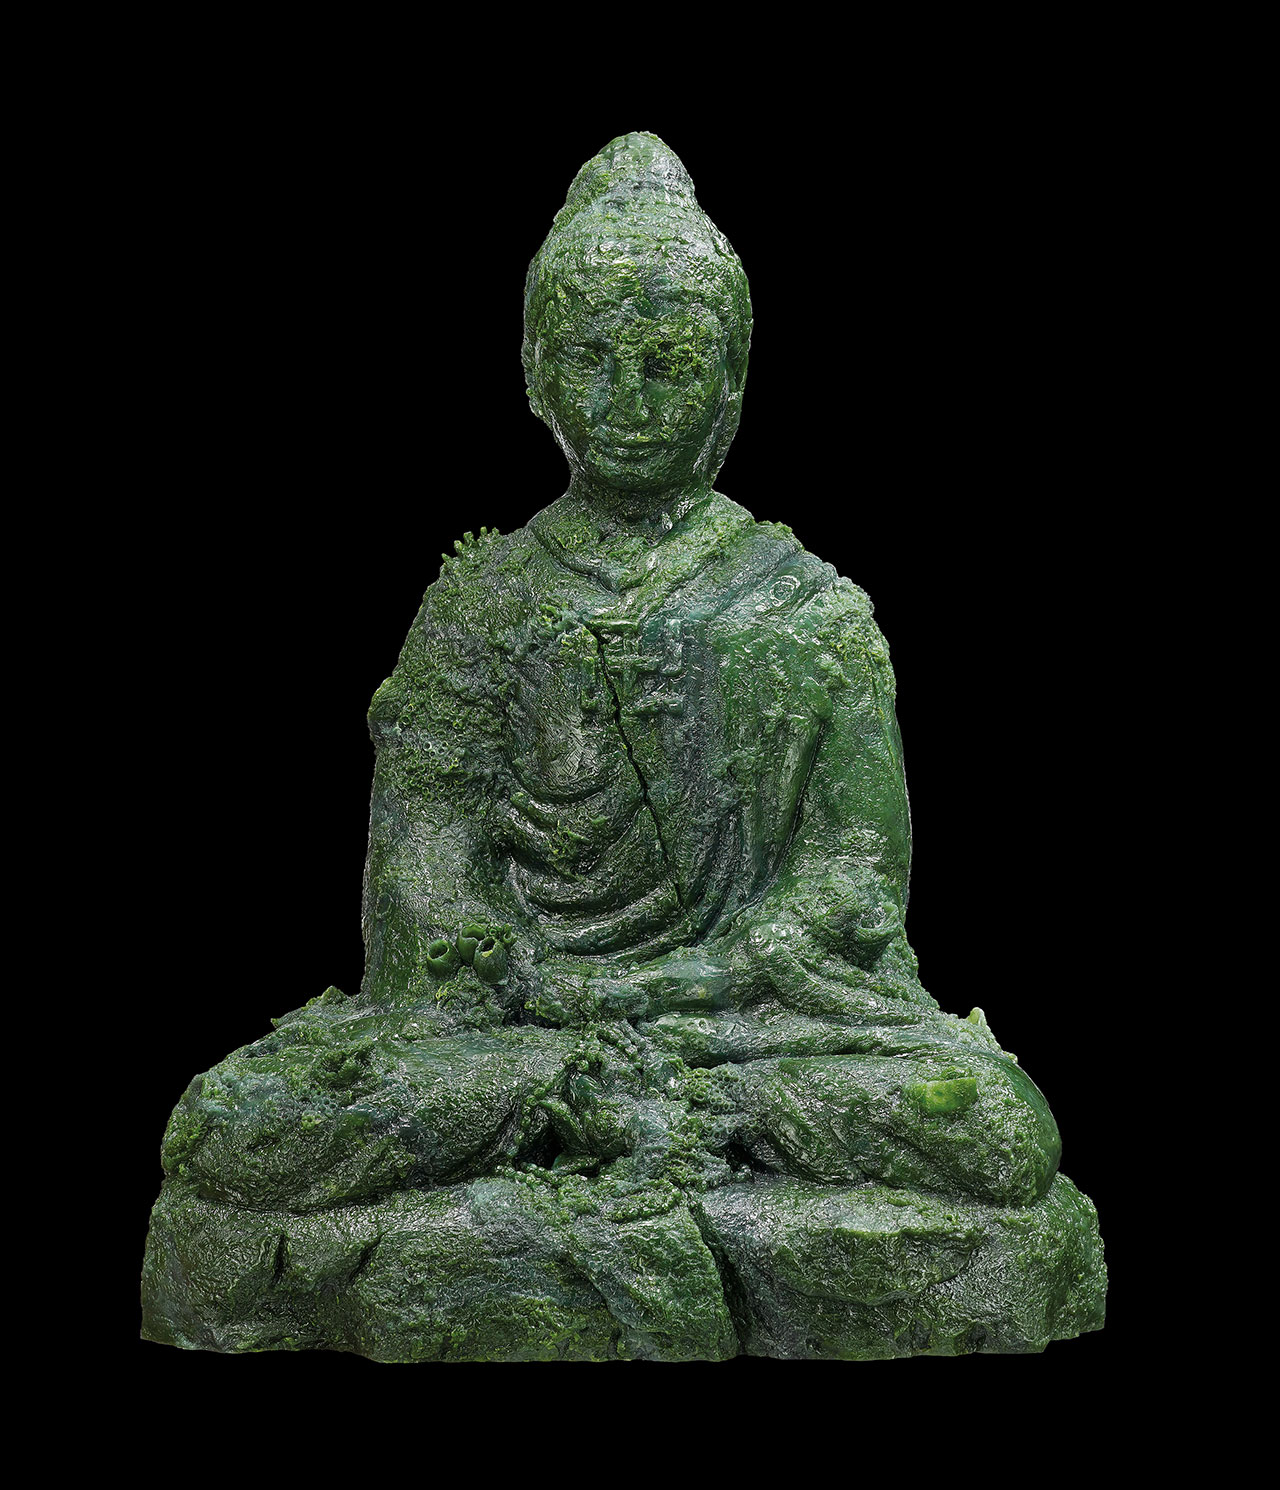 Damien Hirst, Jade Buddha. Photographed by Prudence Cuming Associates © Damien Hirst and Science Ltd. All rights reserved,DACS/SIAE 2017.